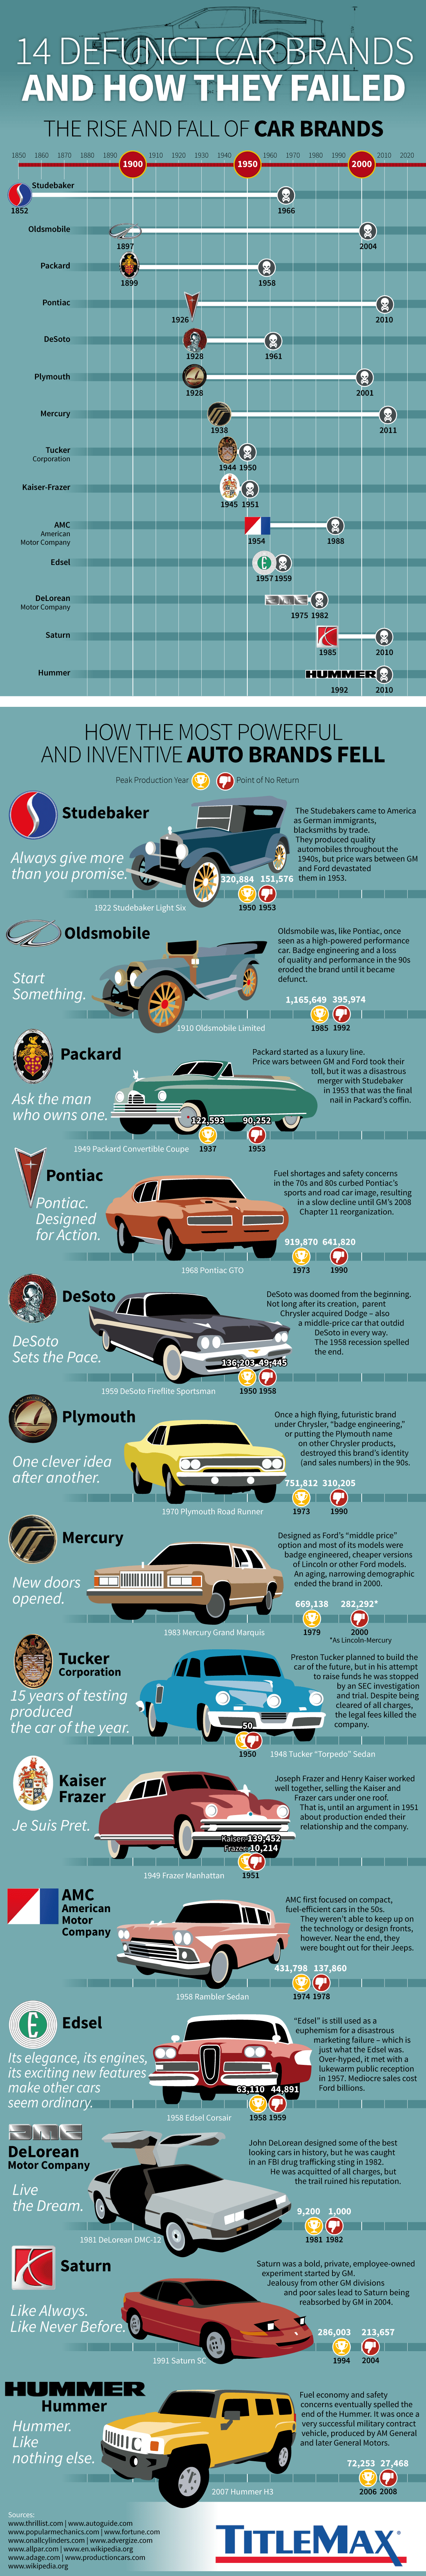 14 Defunct Car Brands And Why They Failed Car Brands Infographic Best New Cars